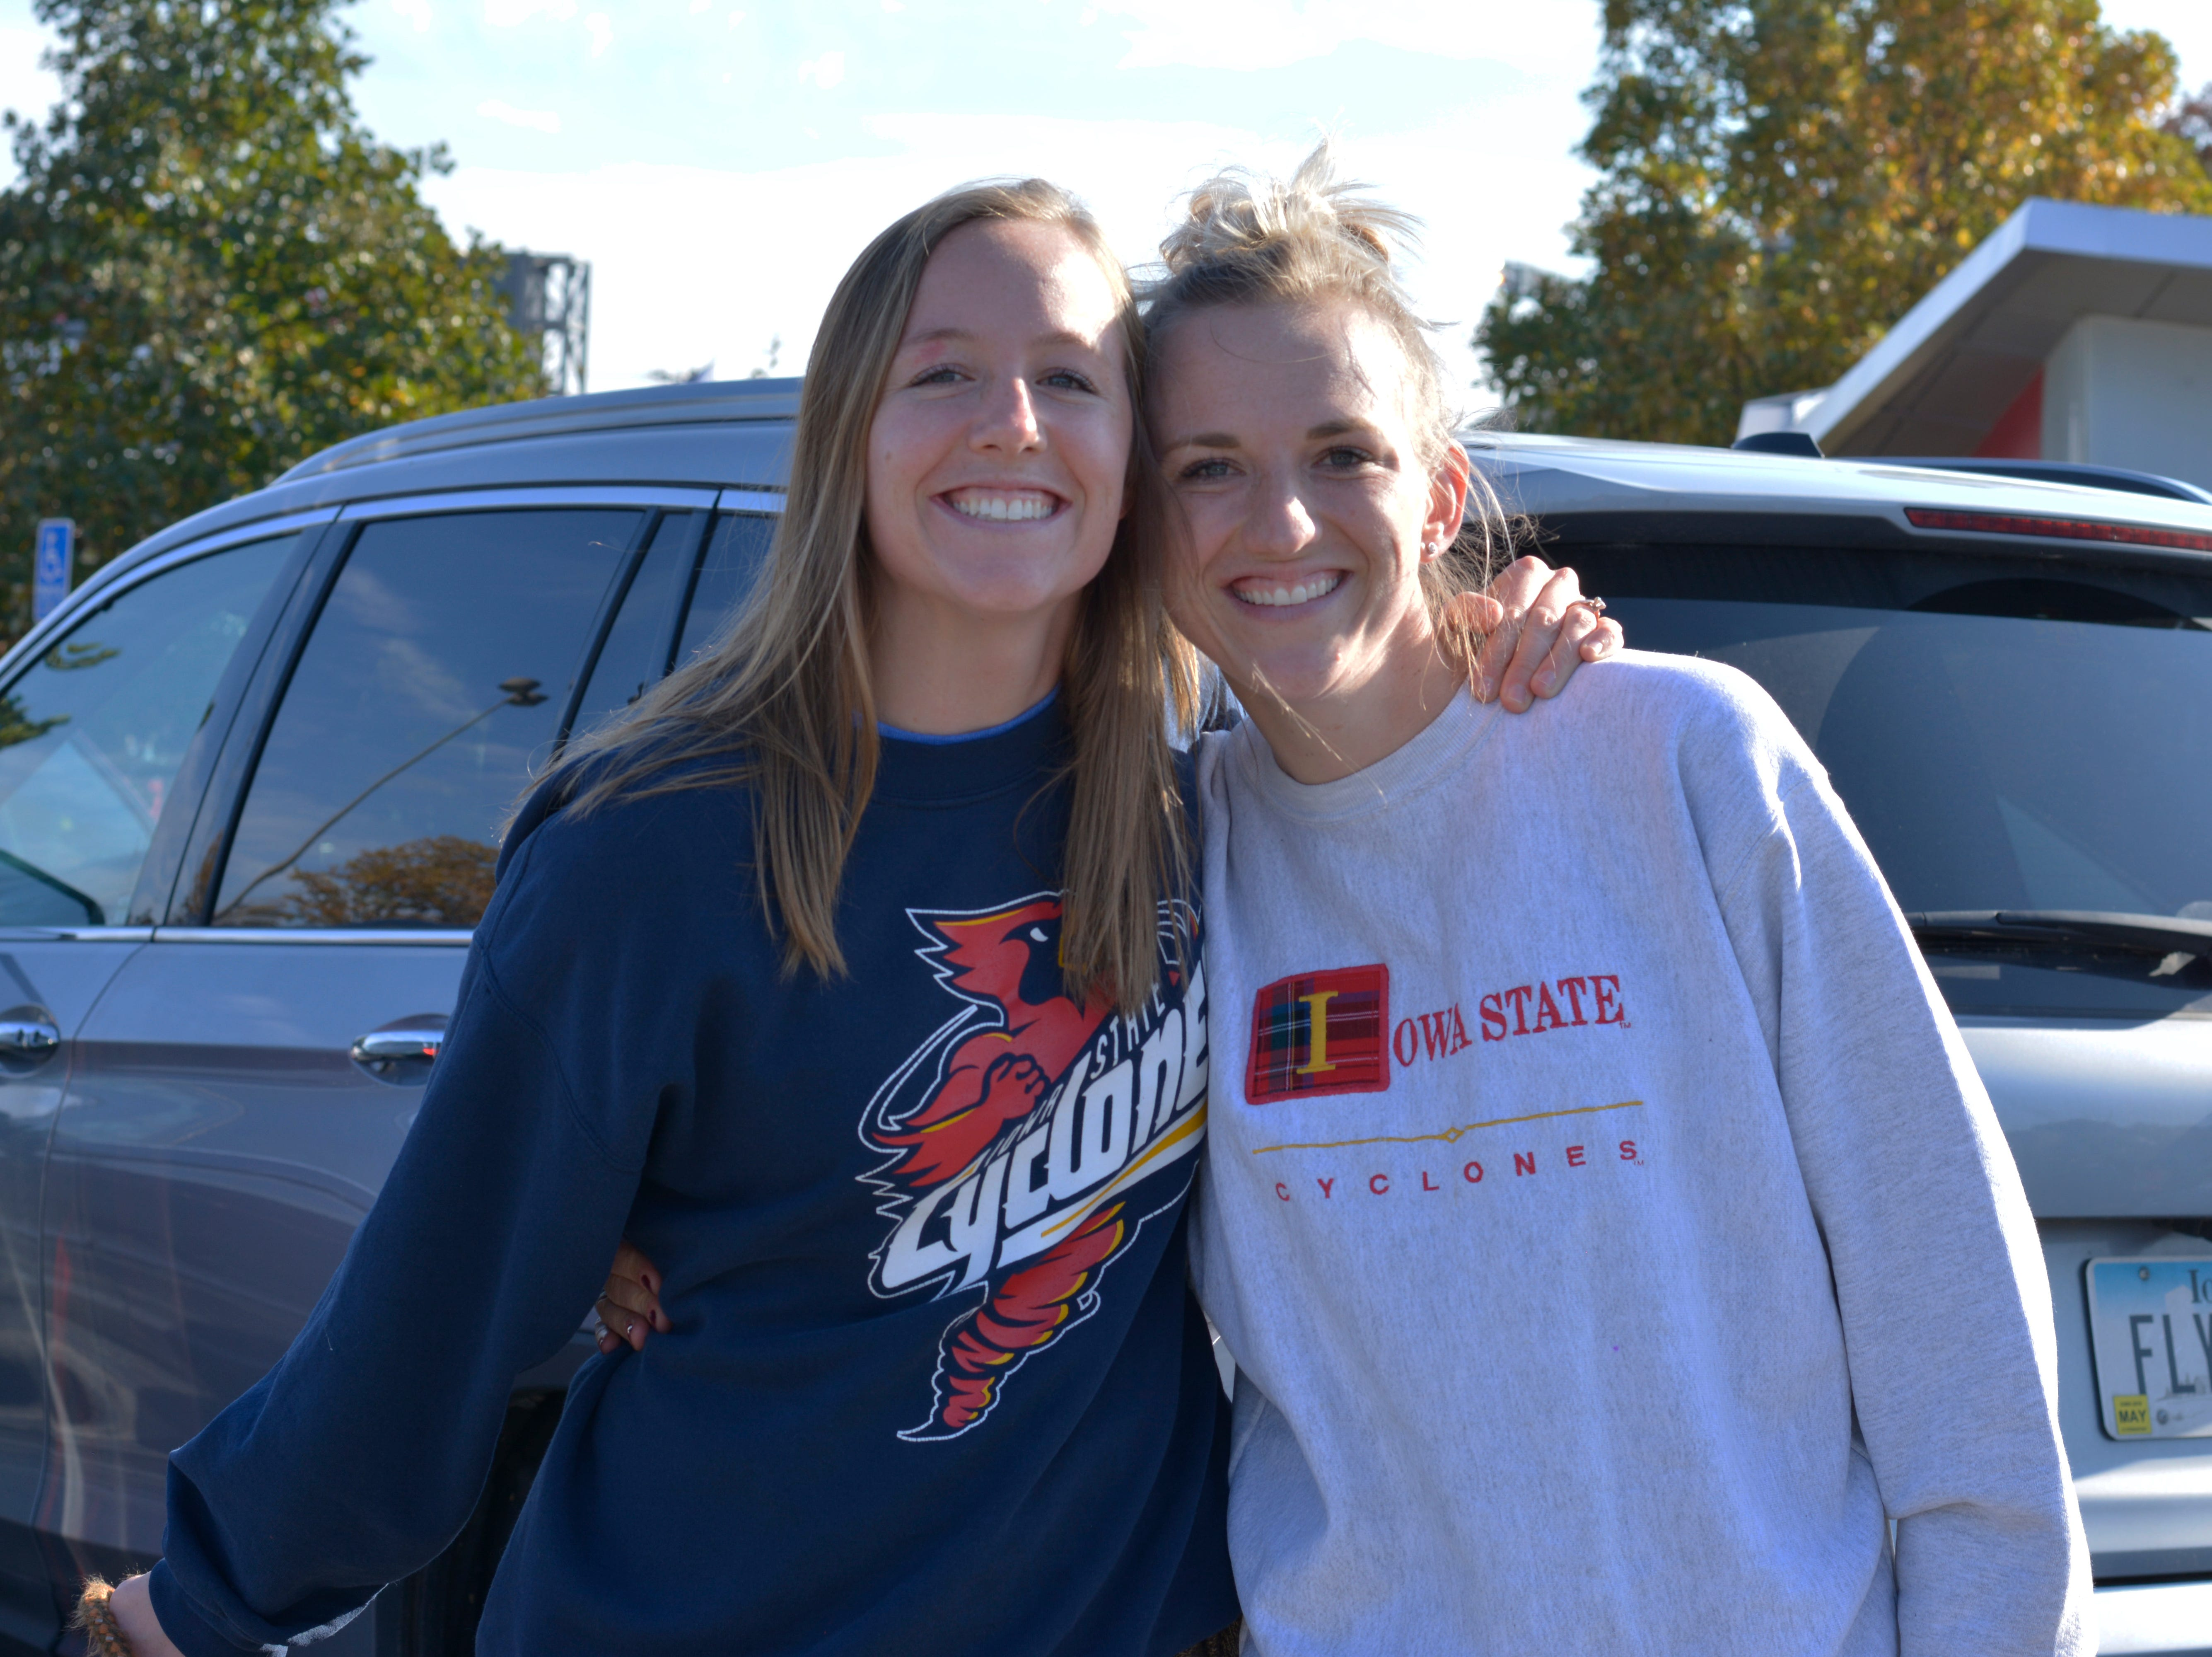 Molly Ferris (left) and Madelyn Sorensen (right) before the Iowa State University football game against West Virginia in Ames on Oct. 13.